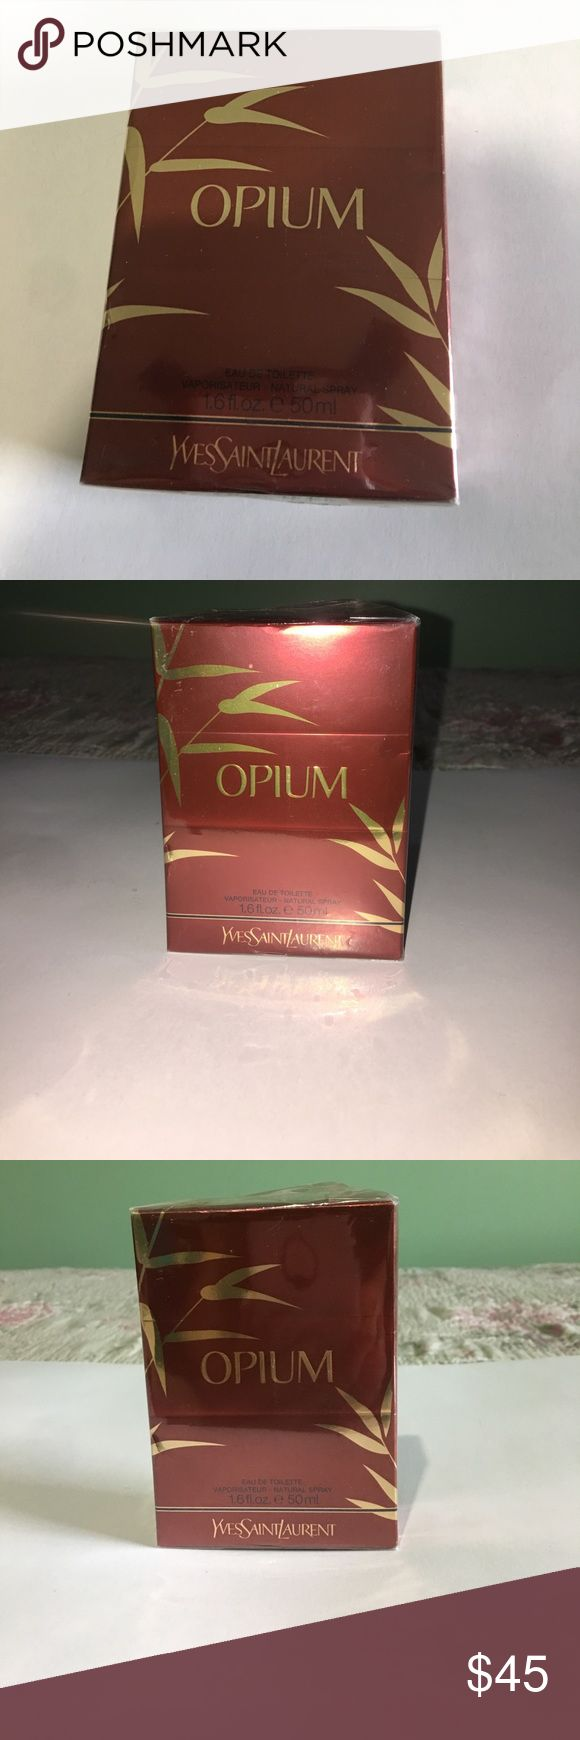 Opium Yves Saint Laurent Opium Yves Saint Laurent Perfume Brand New Still Sealed! Amazing perfume definitely a classic! 1.6 fl. oz. 50ml Yves Saint Laurent Other